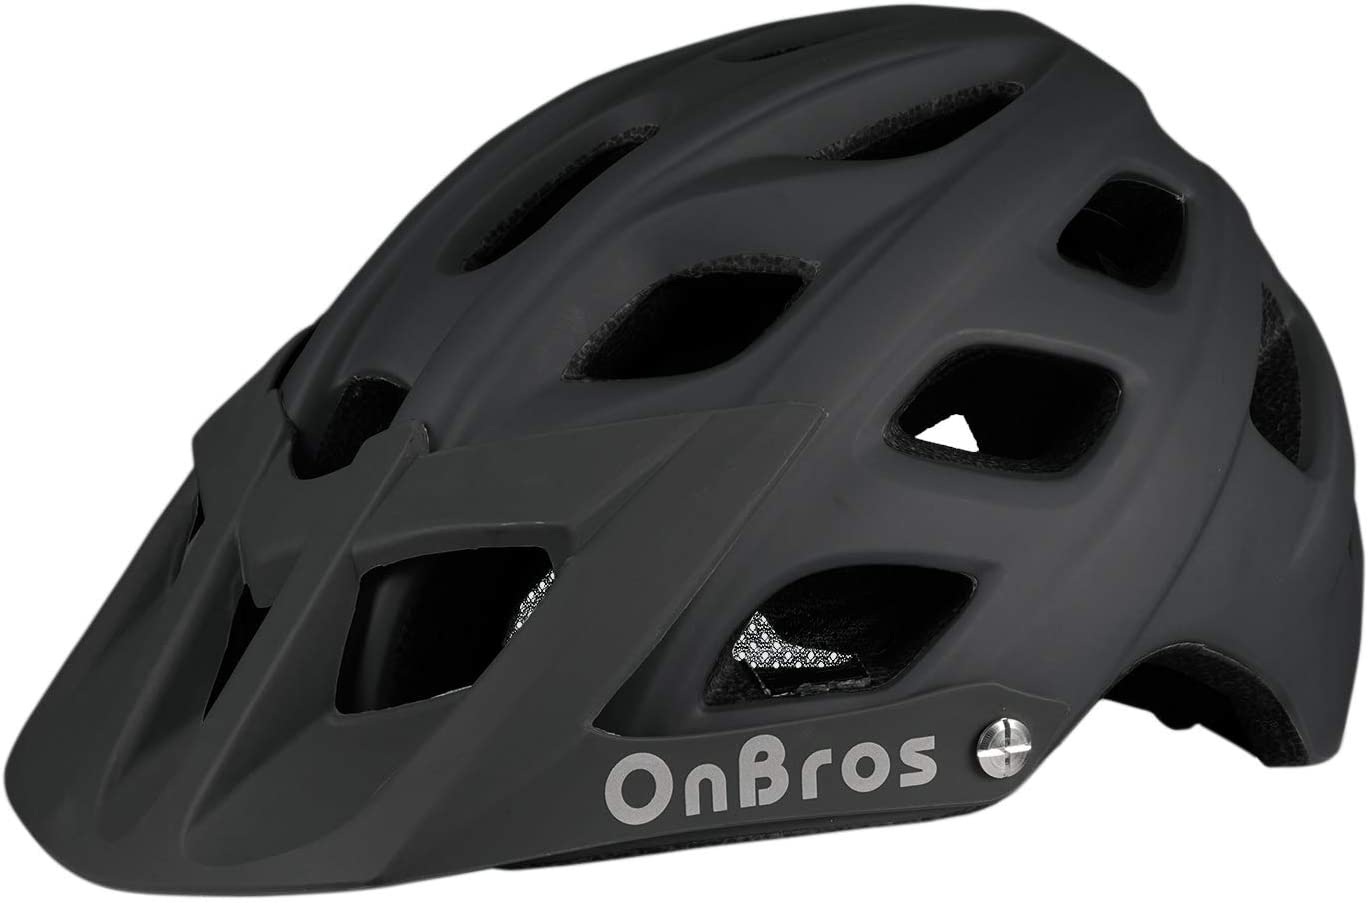 OnBros Mountain Bike Helmet for Adults, MTB Bicycle Helmets with Sun Visor, Lightweight Cycling Helmets for Women and Men, CPSC Certified